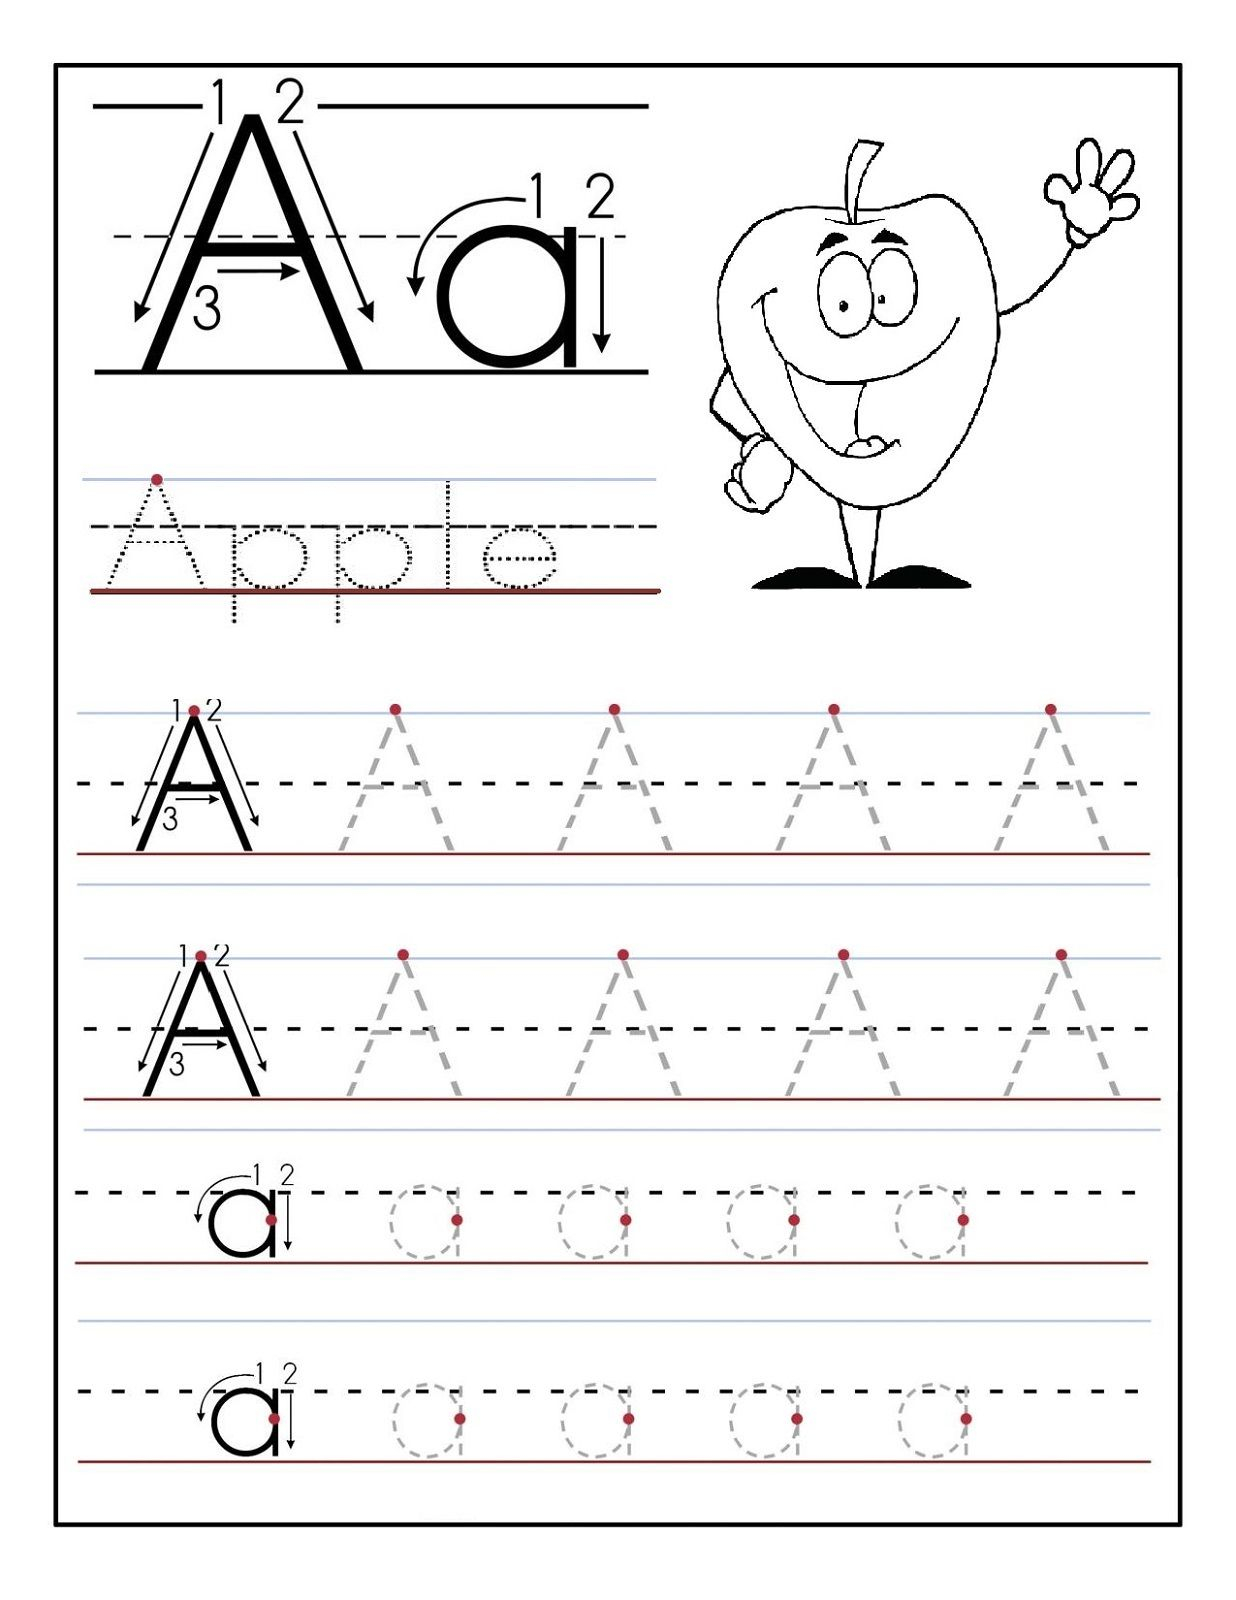 Free Preschool Printables In 2020 (With Images) | Tracing